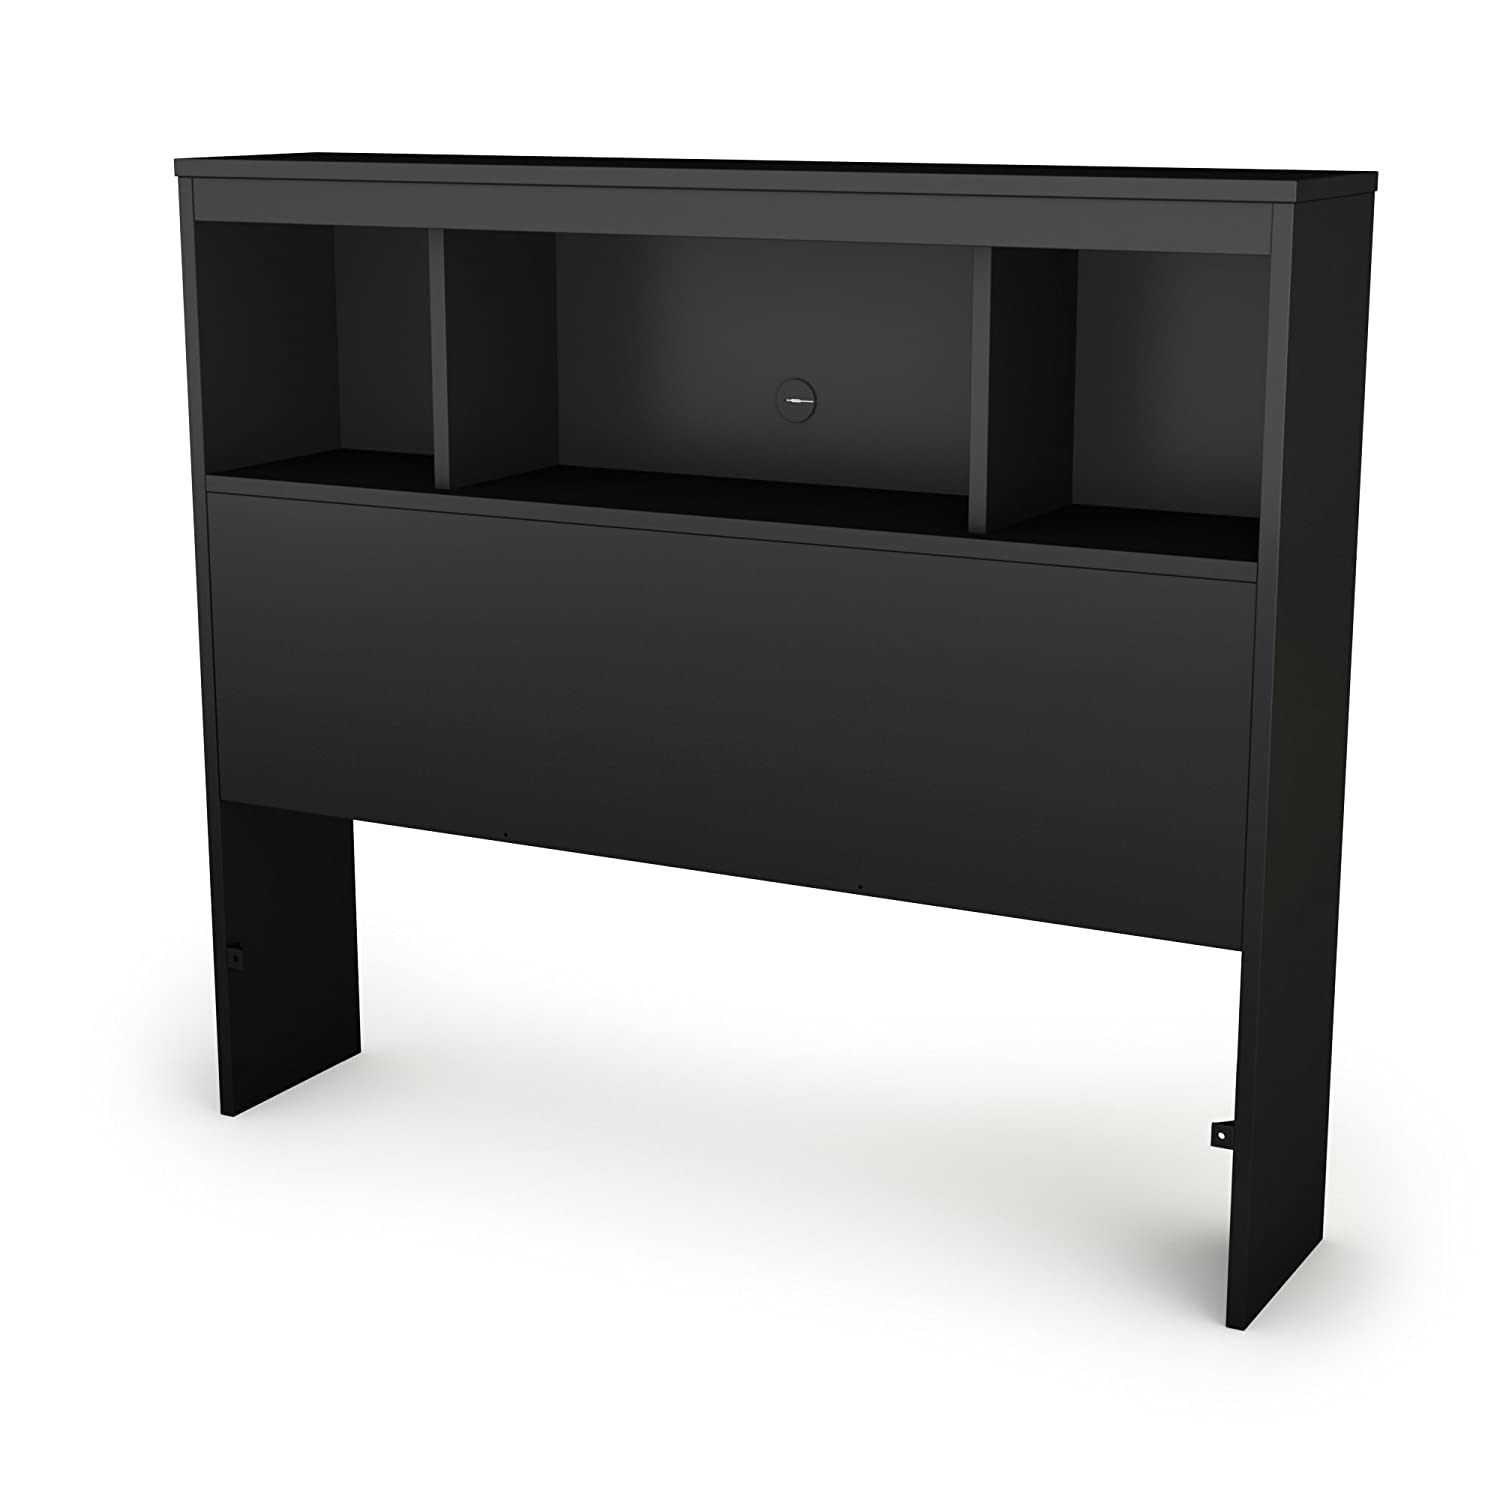 Amazon.com: Black - Headboards / Bedroom Furniture: Furniture & Decor